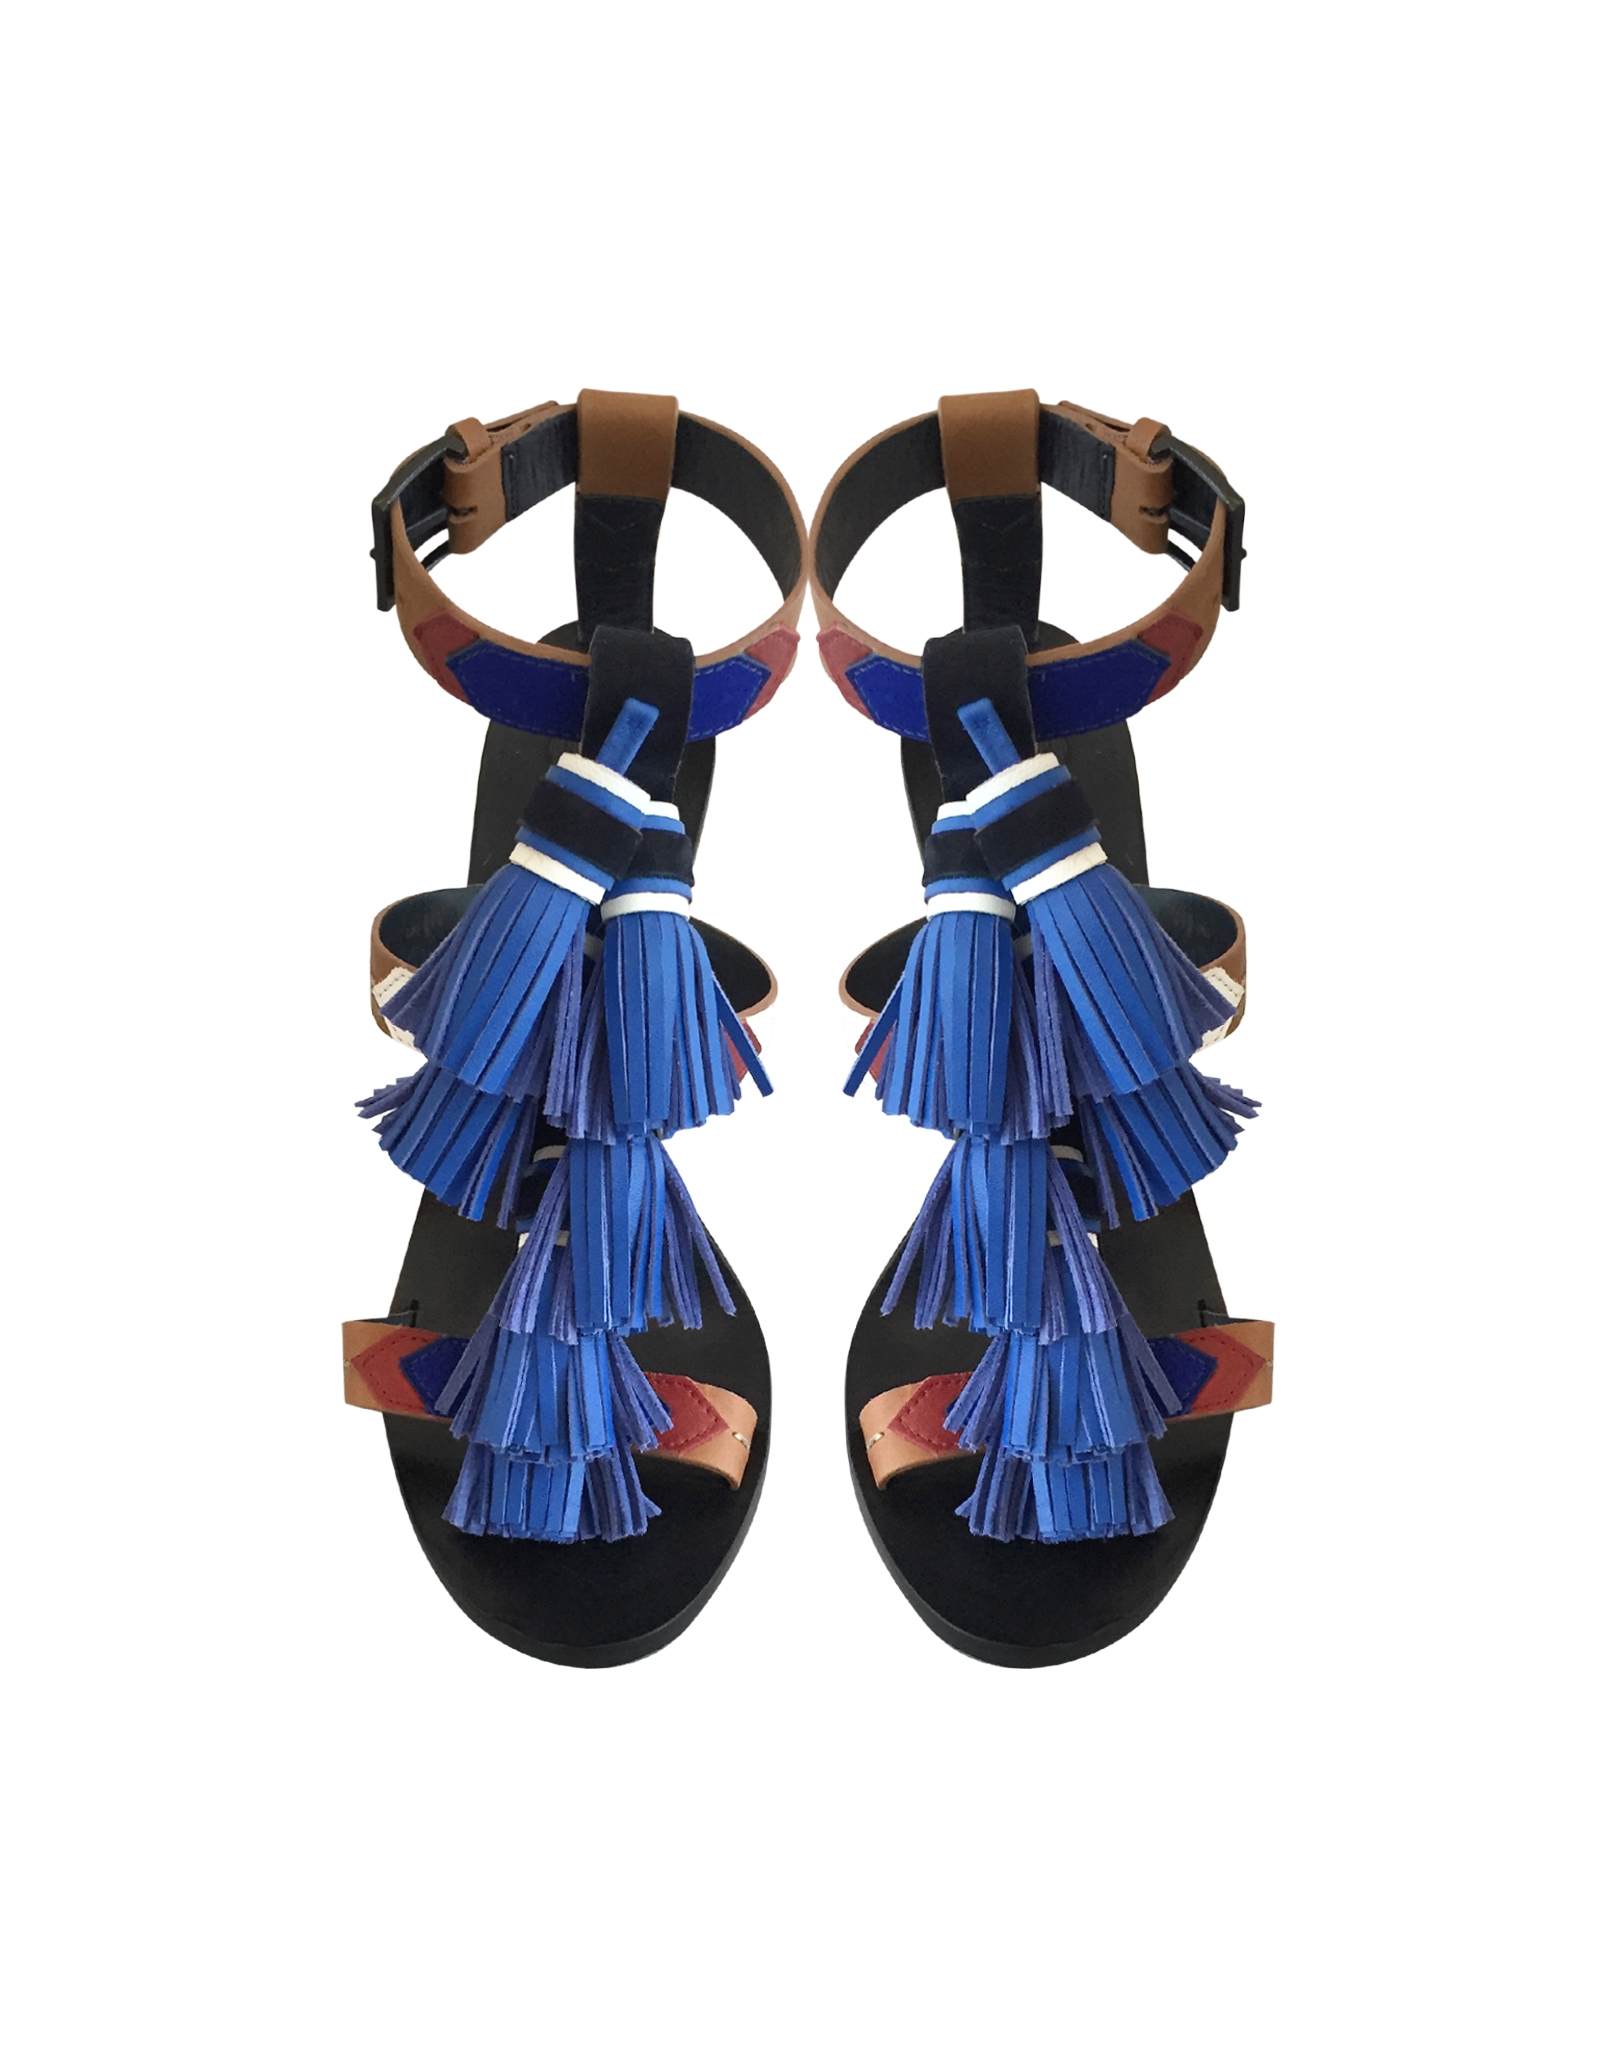 9b8efbf85014 Lyst - Tory Burch Multi Blue Leather Weaver Tassel Sandal